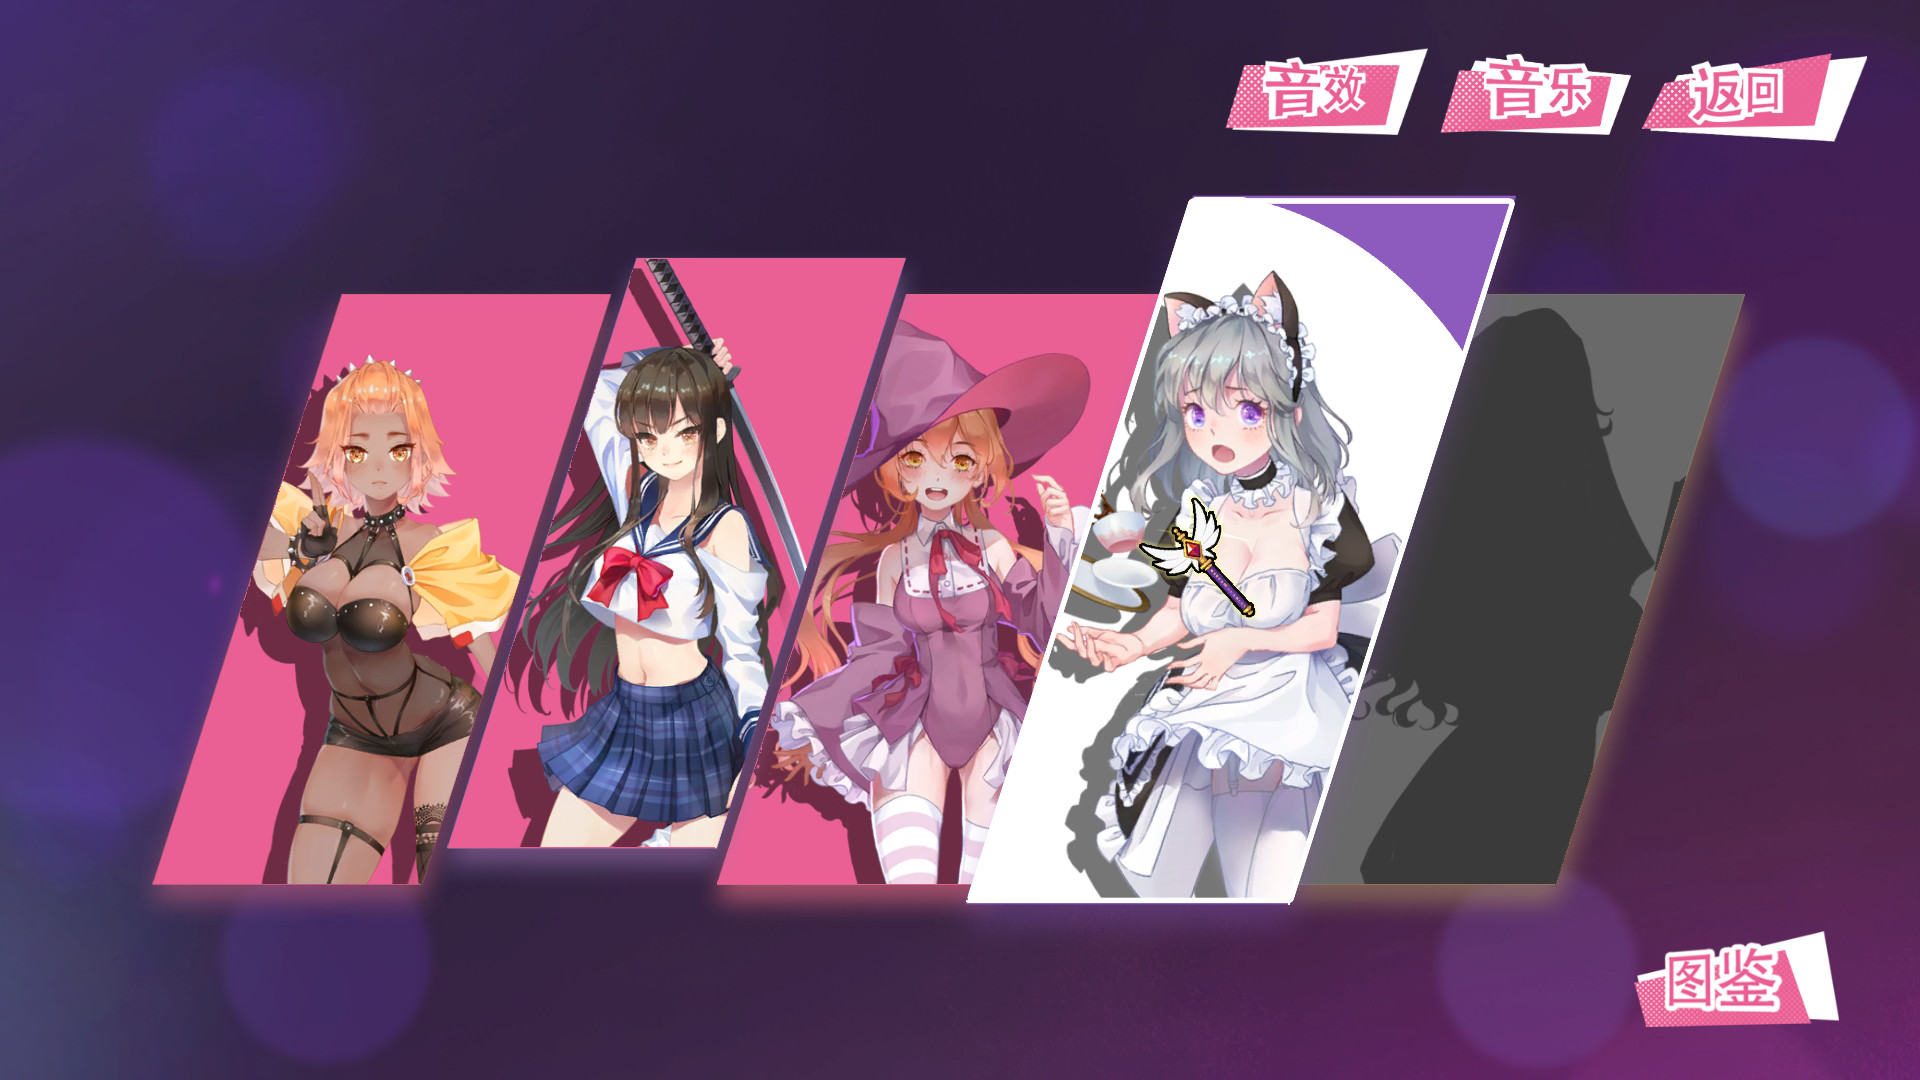 Find the best laptops for 符文女孩/Rune Girl